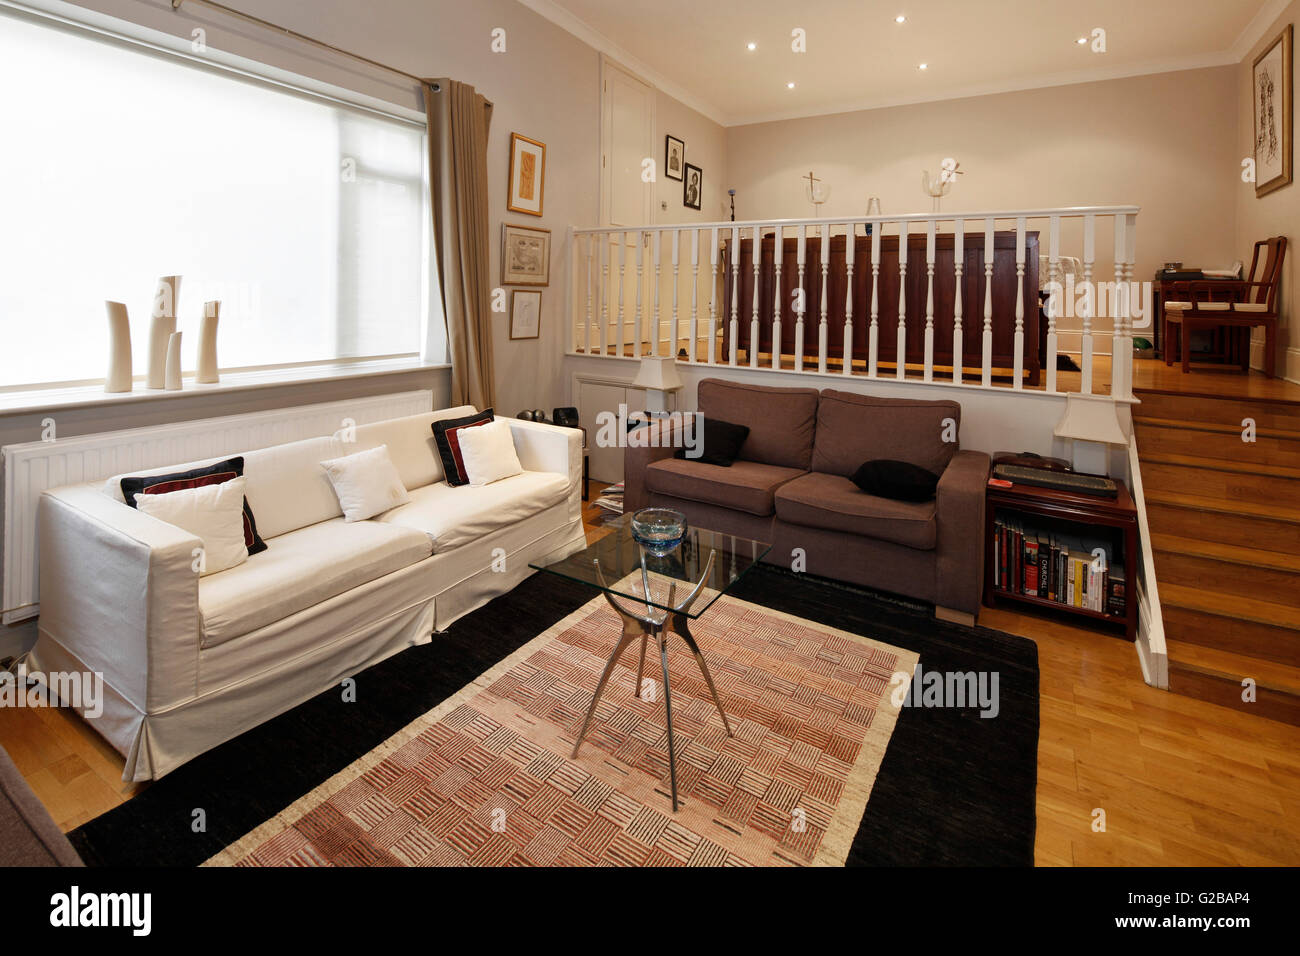 Walden House, Marylebone High Street. View of a two level living room. Stair case with white railing. Contemporary - Stock Image